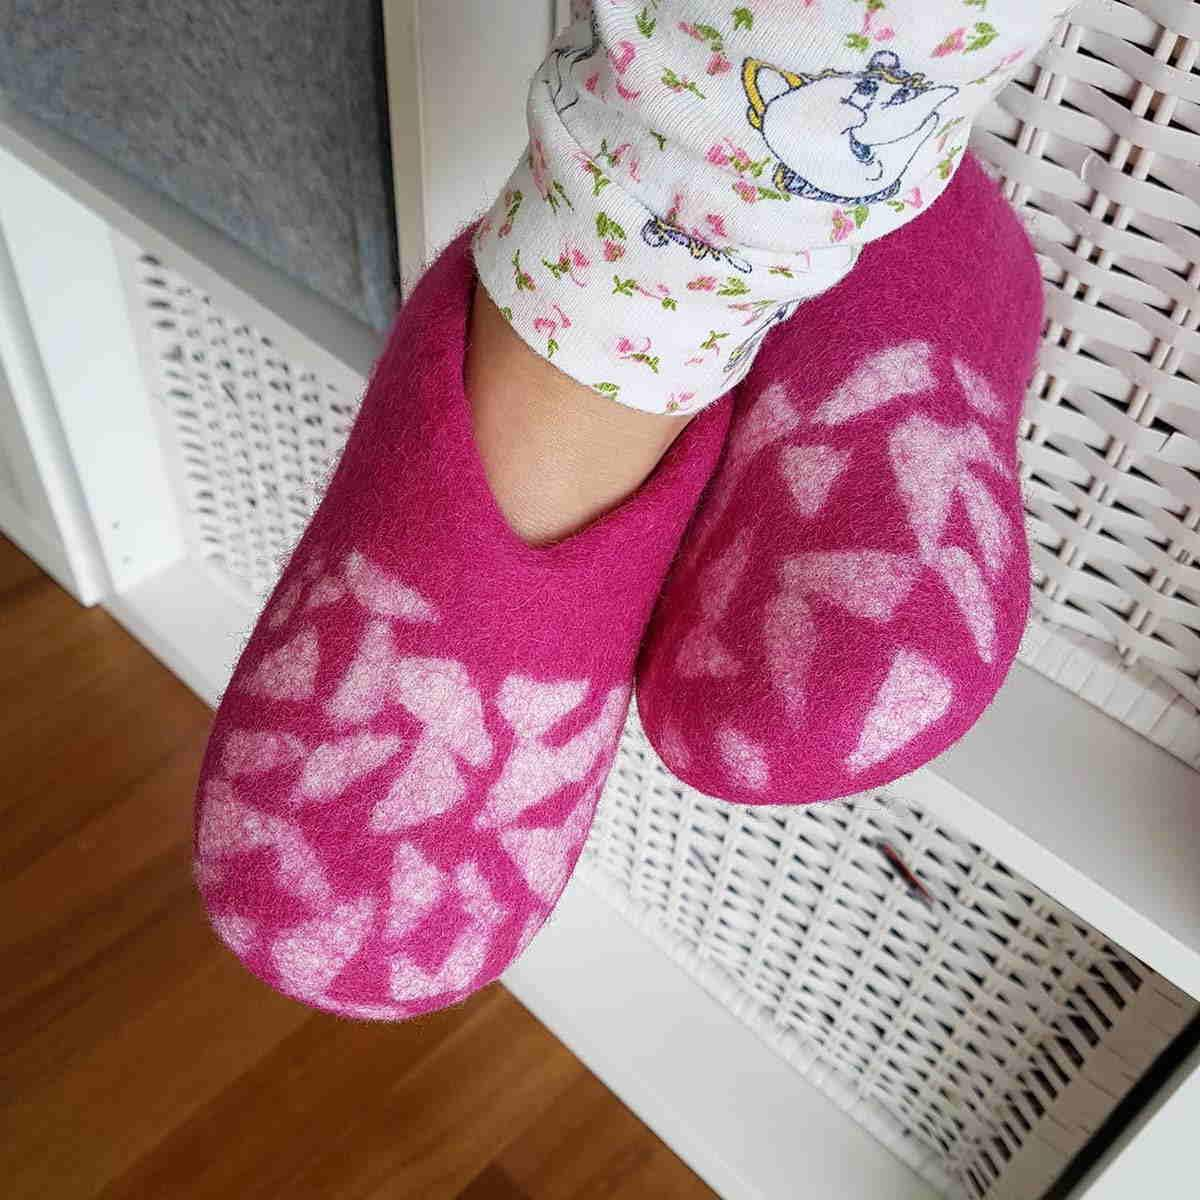 56864cc4c4be Winter slippers for kids BITS fuchsia pink - by Wooppers